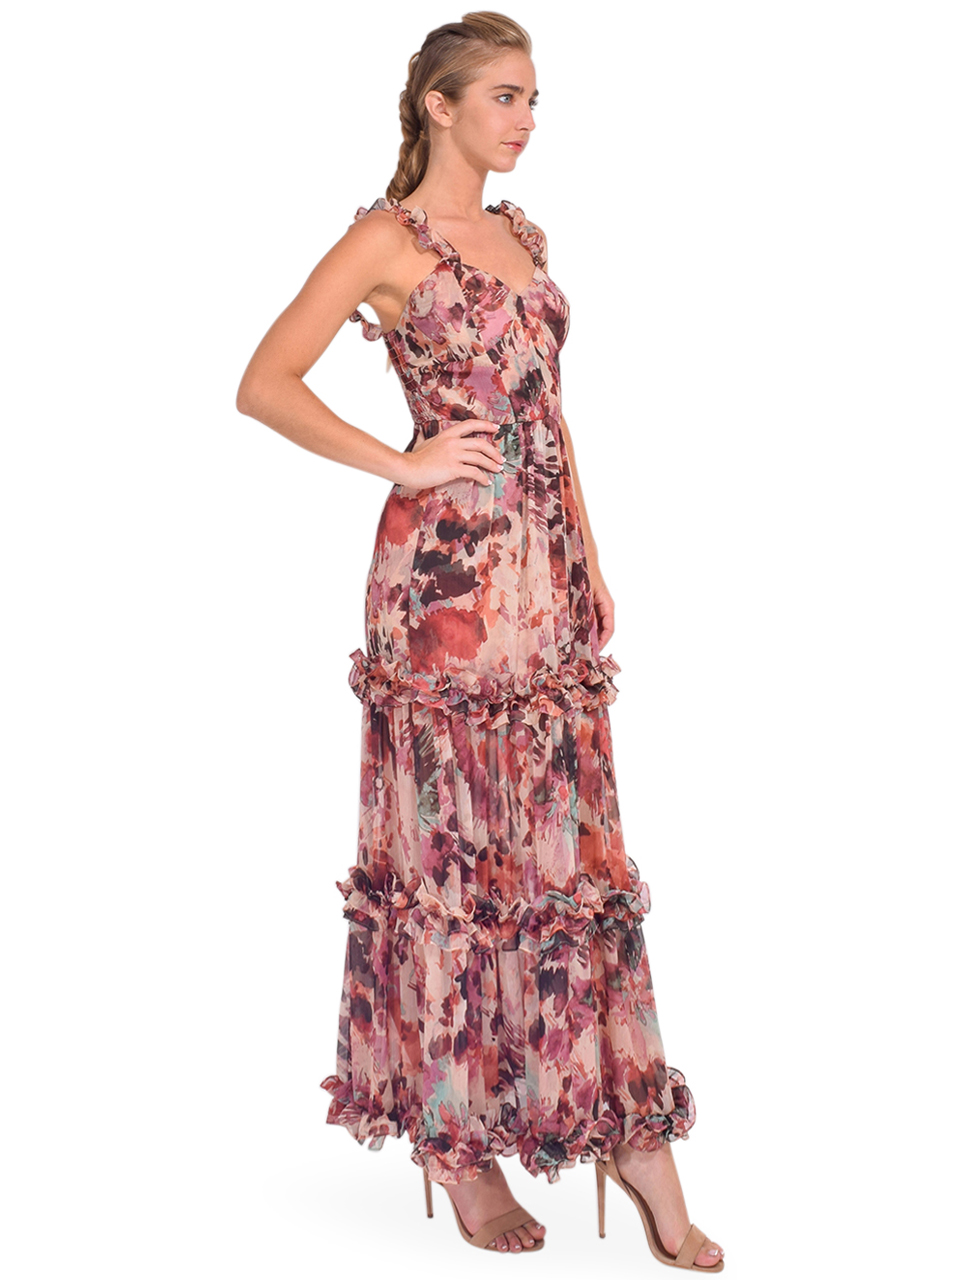 MISA Avery Maxi Dress in Floradream Side View Straps on Shoulder